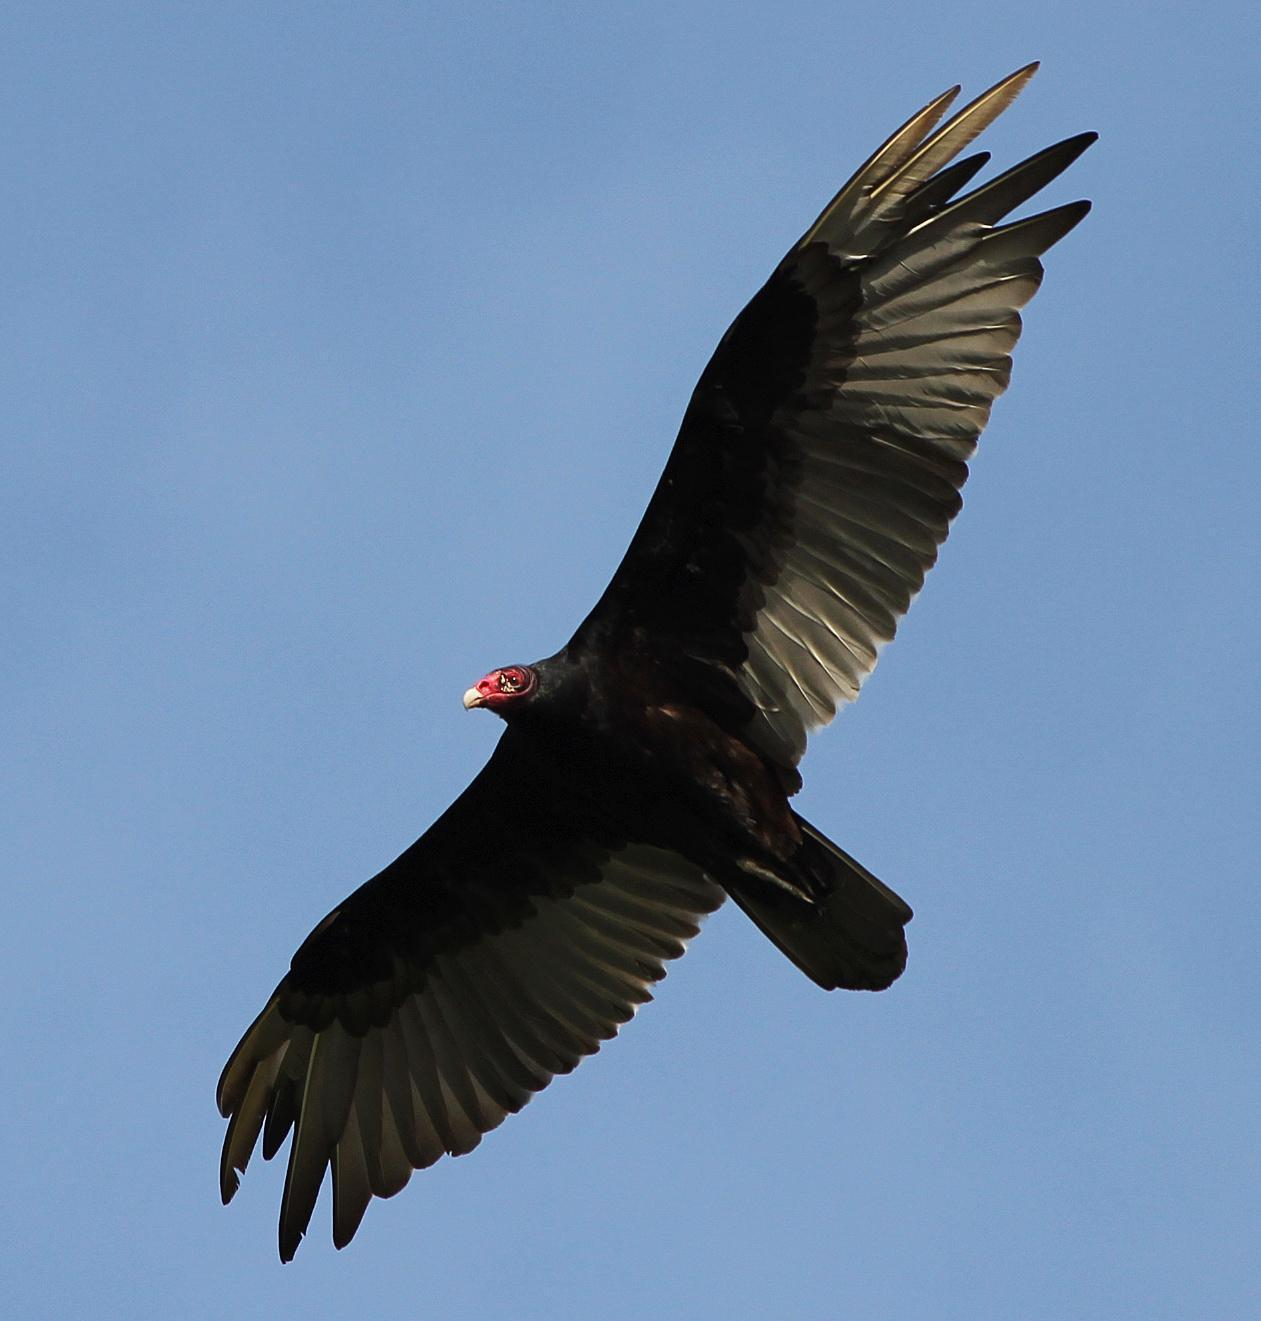 Turkey Vulture Photo by Tom Gannon